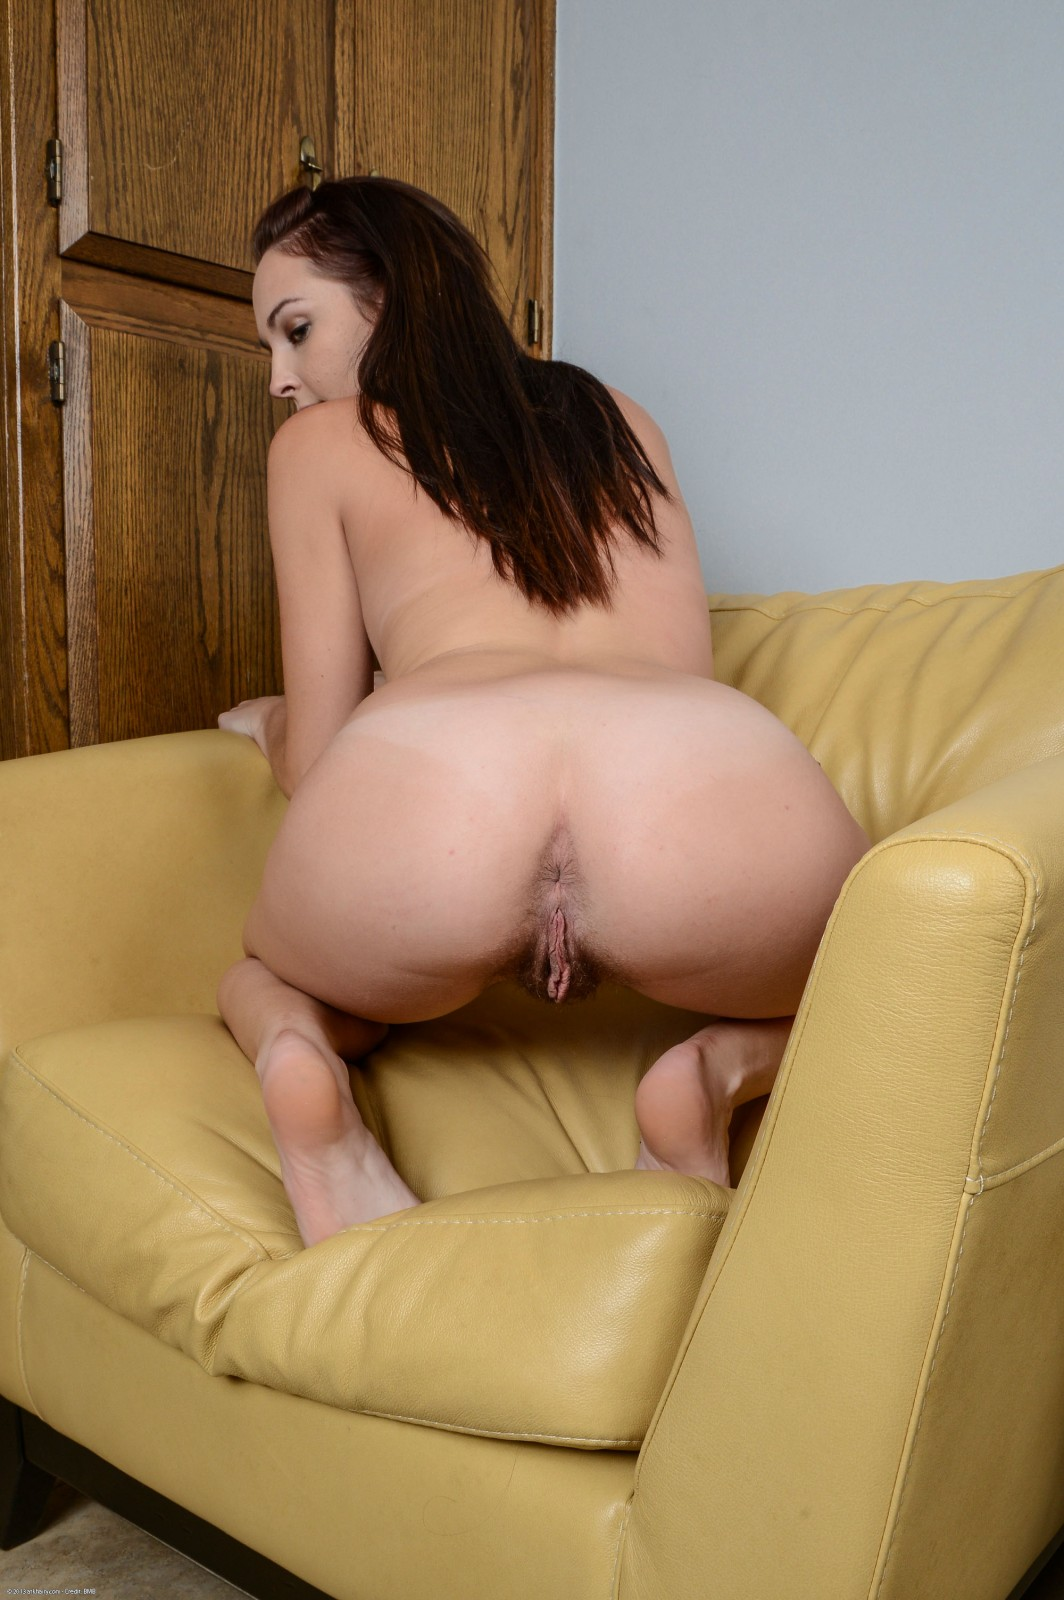 Nude woman unshaved ass — pic 6